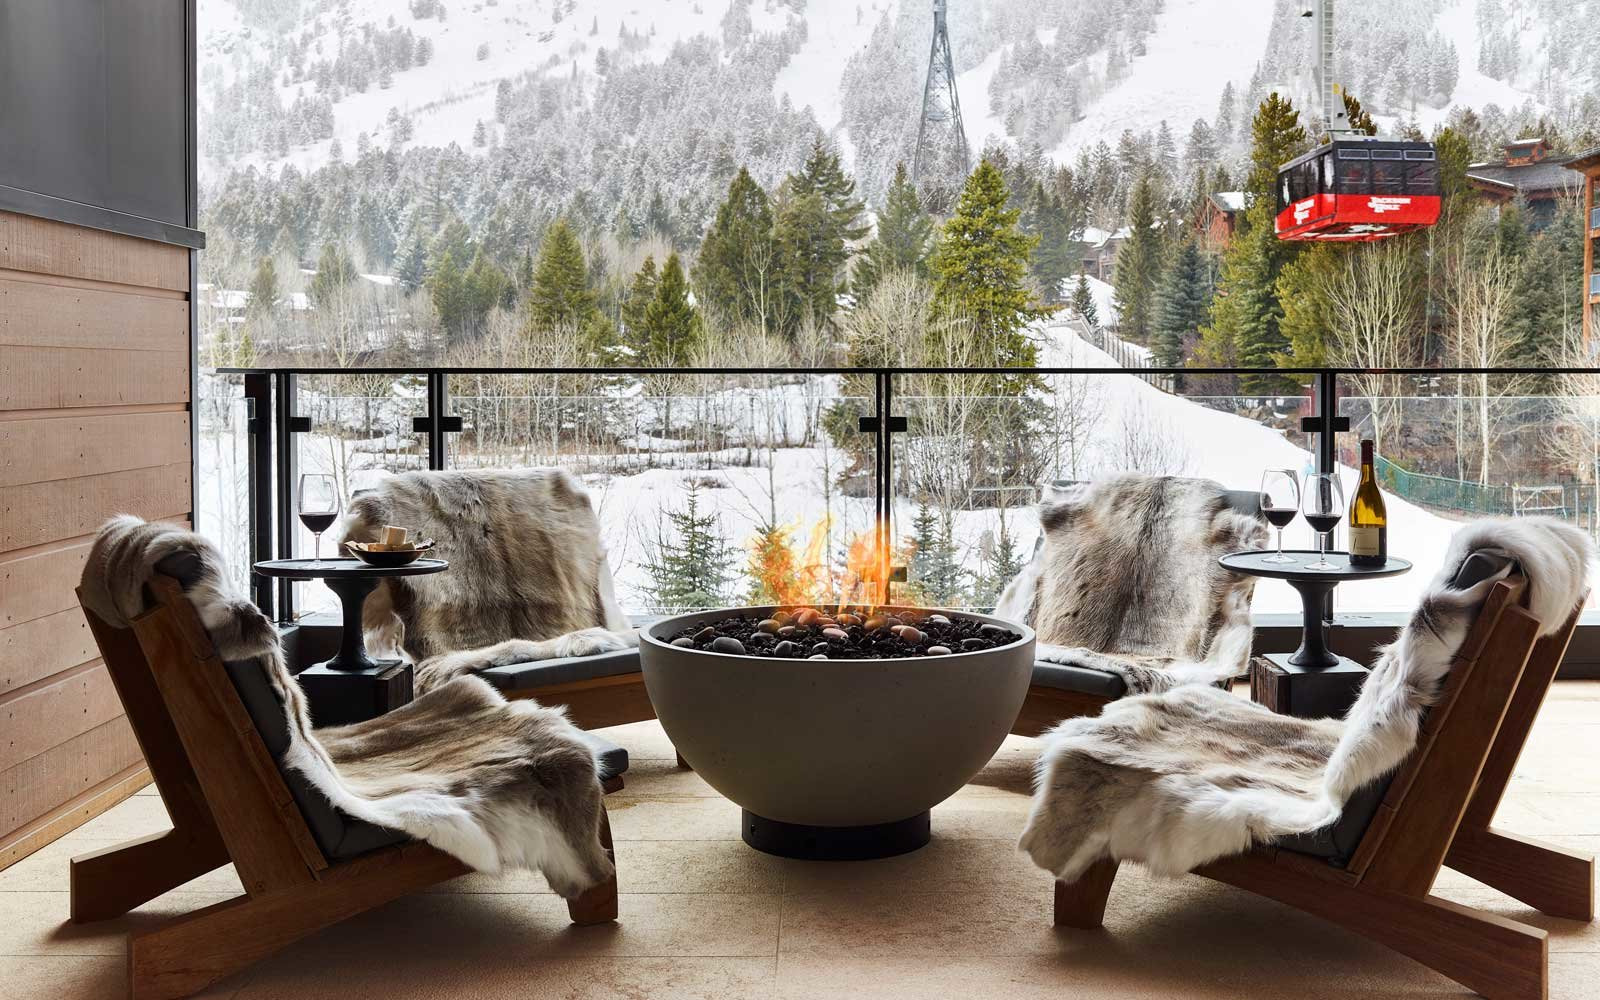 Terrace at the Caldera House Hotel in Jackson, Wyoming